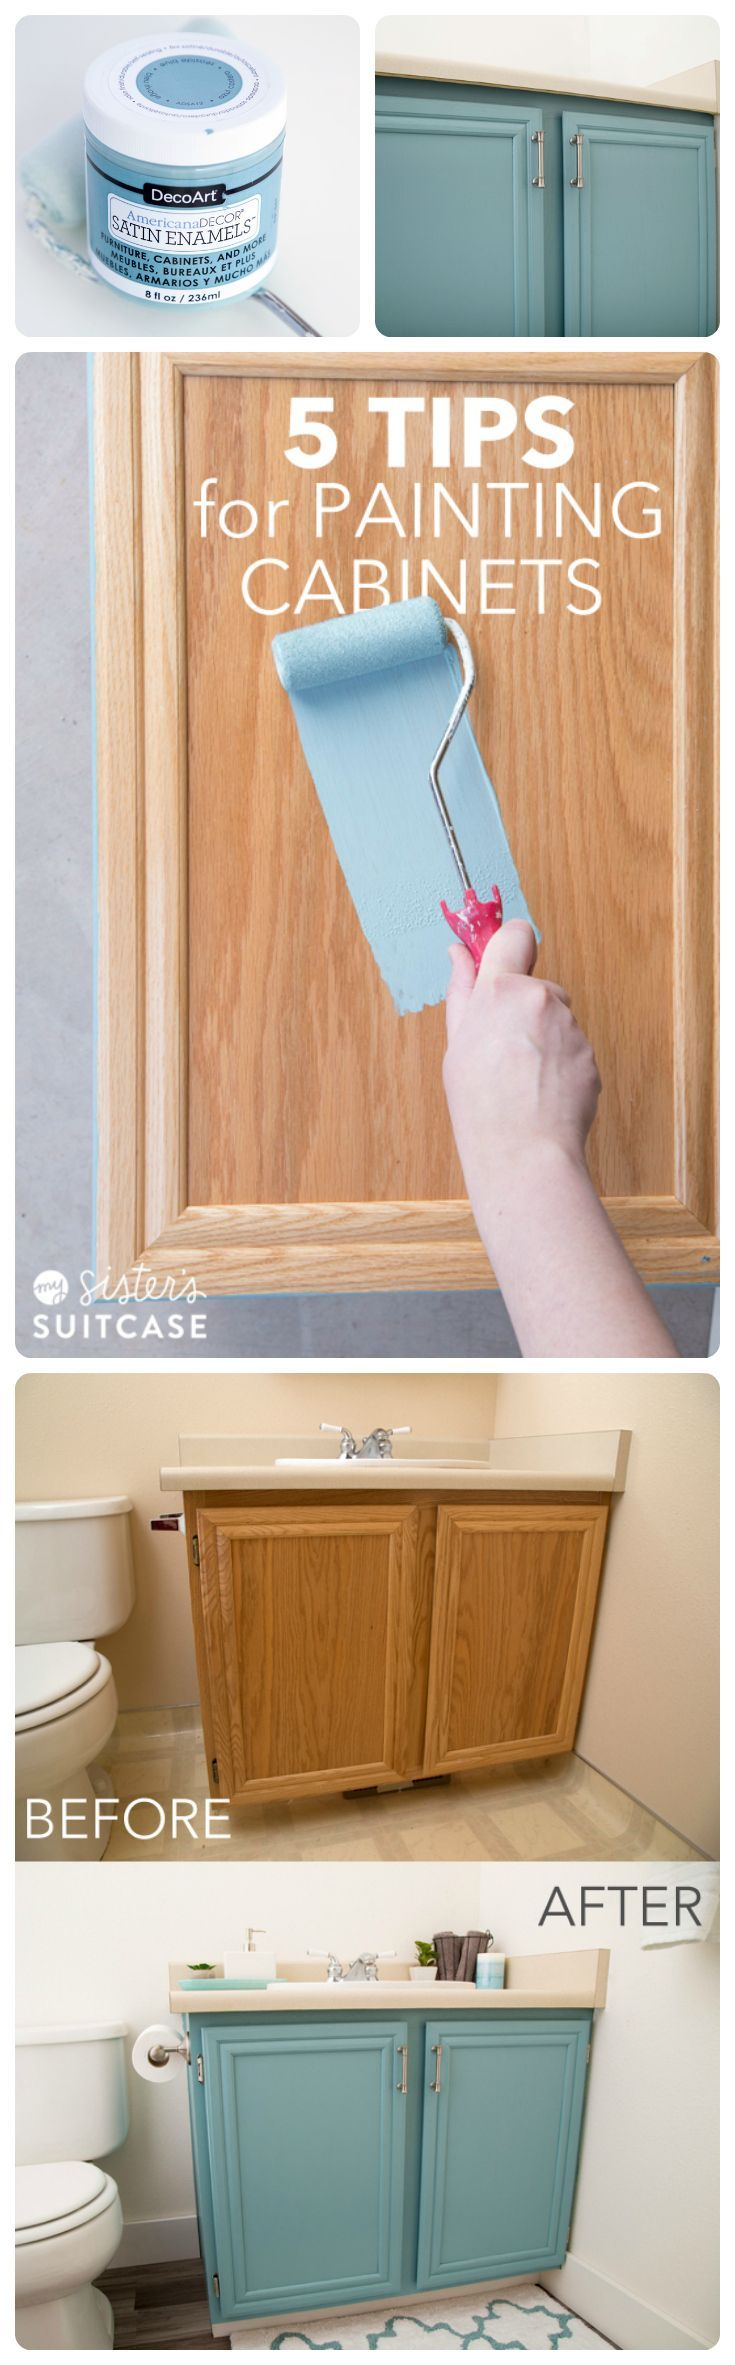 cool Teal-ish cabinets for hall bathroom... by http://www.coolhome-decorationsideas.xyz/kitchen-decor-designs/teal-ish-cabinets-for-hall-bathroom/